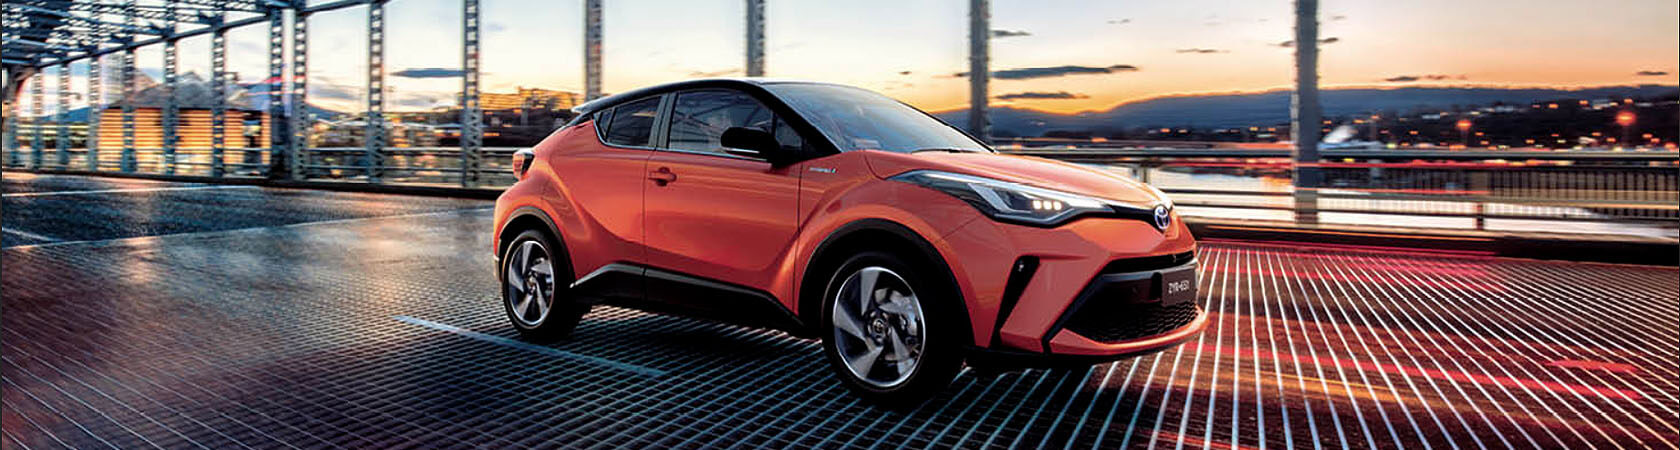 Grand Toyota Wangara C-HR